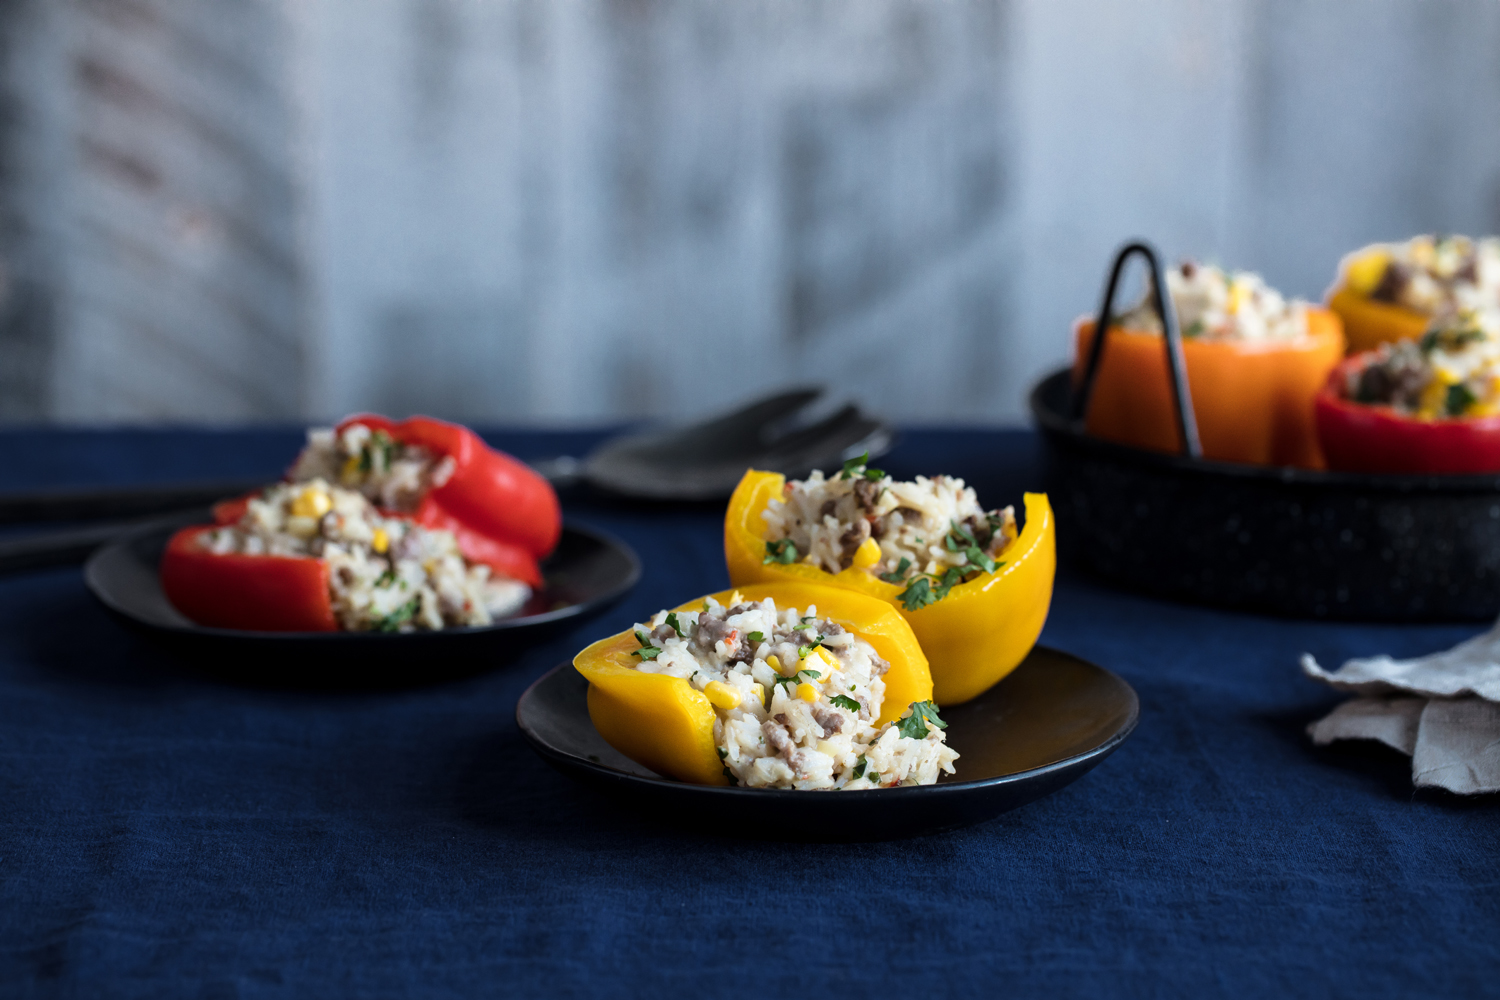 Stuffed Peppers con Queso_726_creditCarlyDiaz.jpg